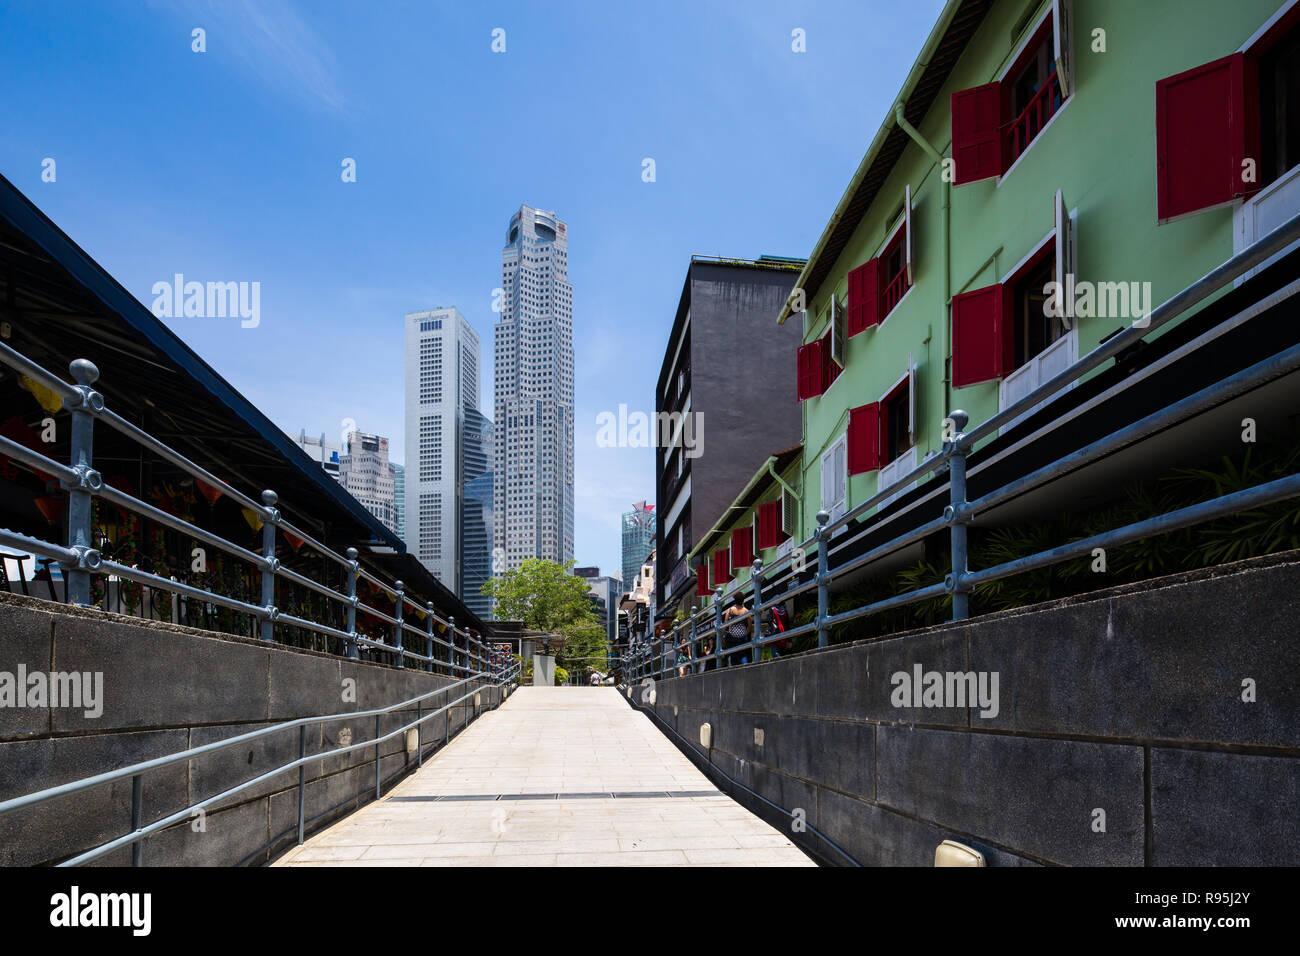 Long stretch of upslope path to viewing of One Raffles Place skyscraper from Boat Quay, Singapore. - Stock Image